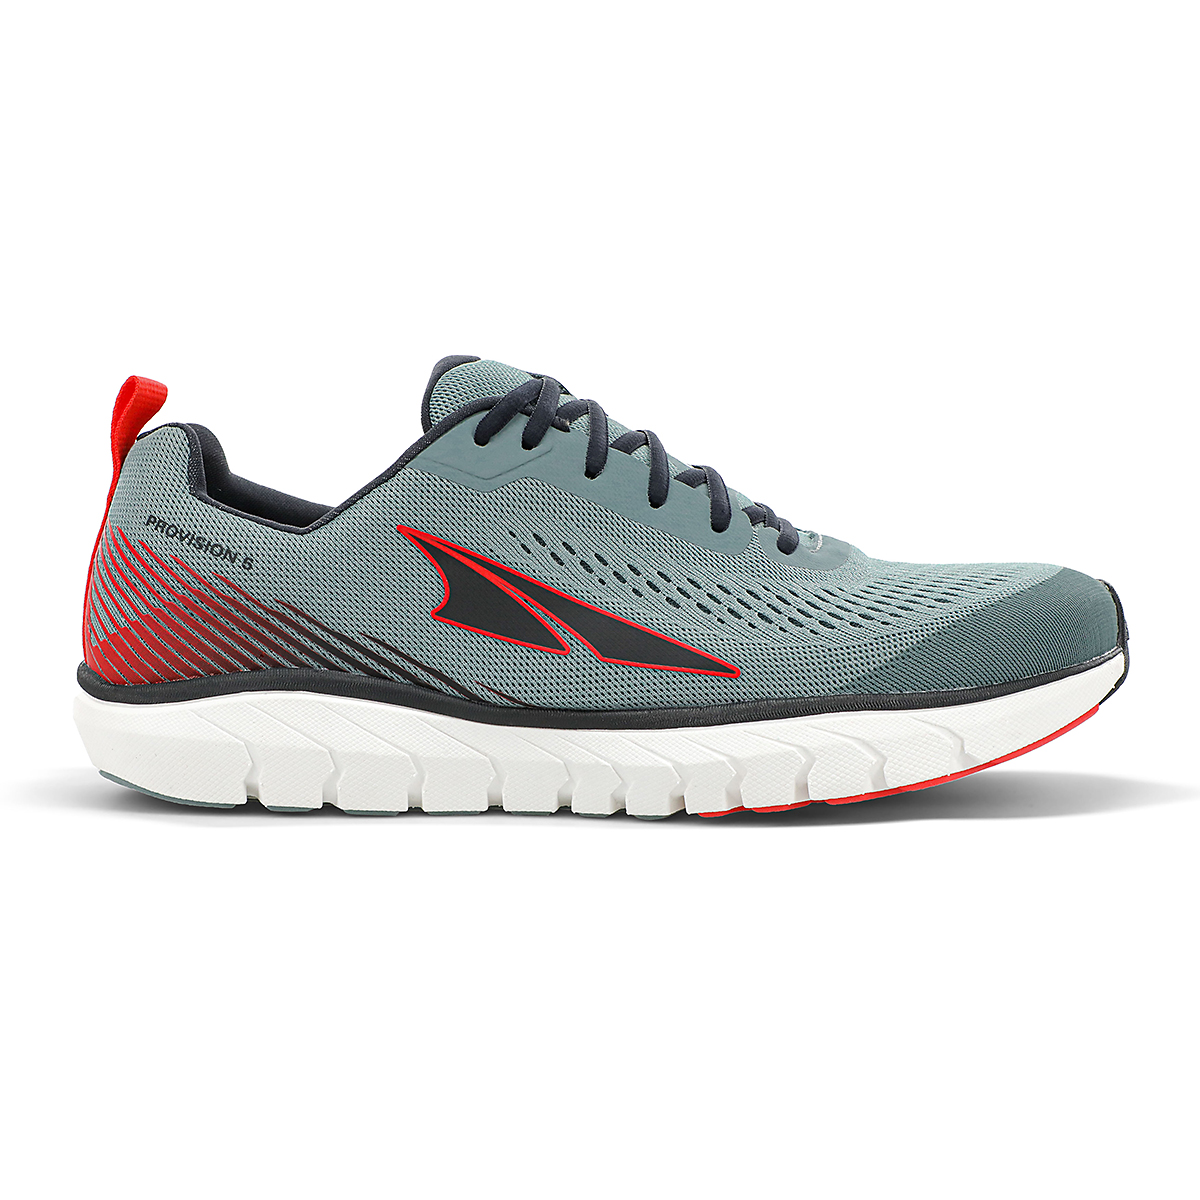 Men's Altra Provision 5 Running Shoe - Color: Light Gray/Red - Size: 7 - Width: Regular, Light Gray/Red, large, image 1